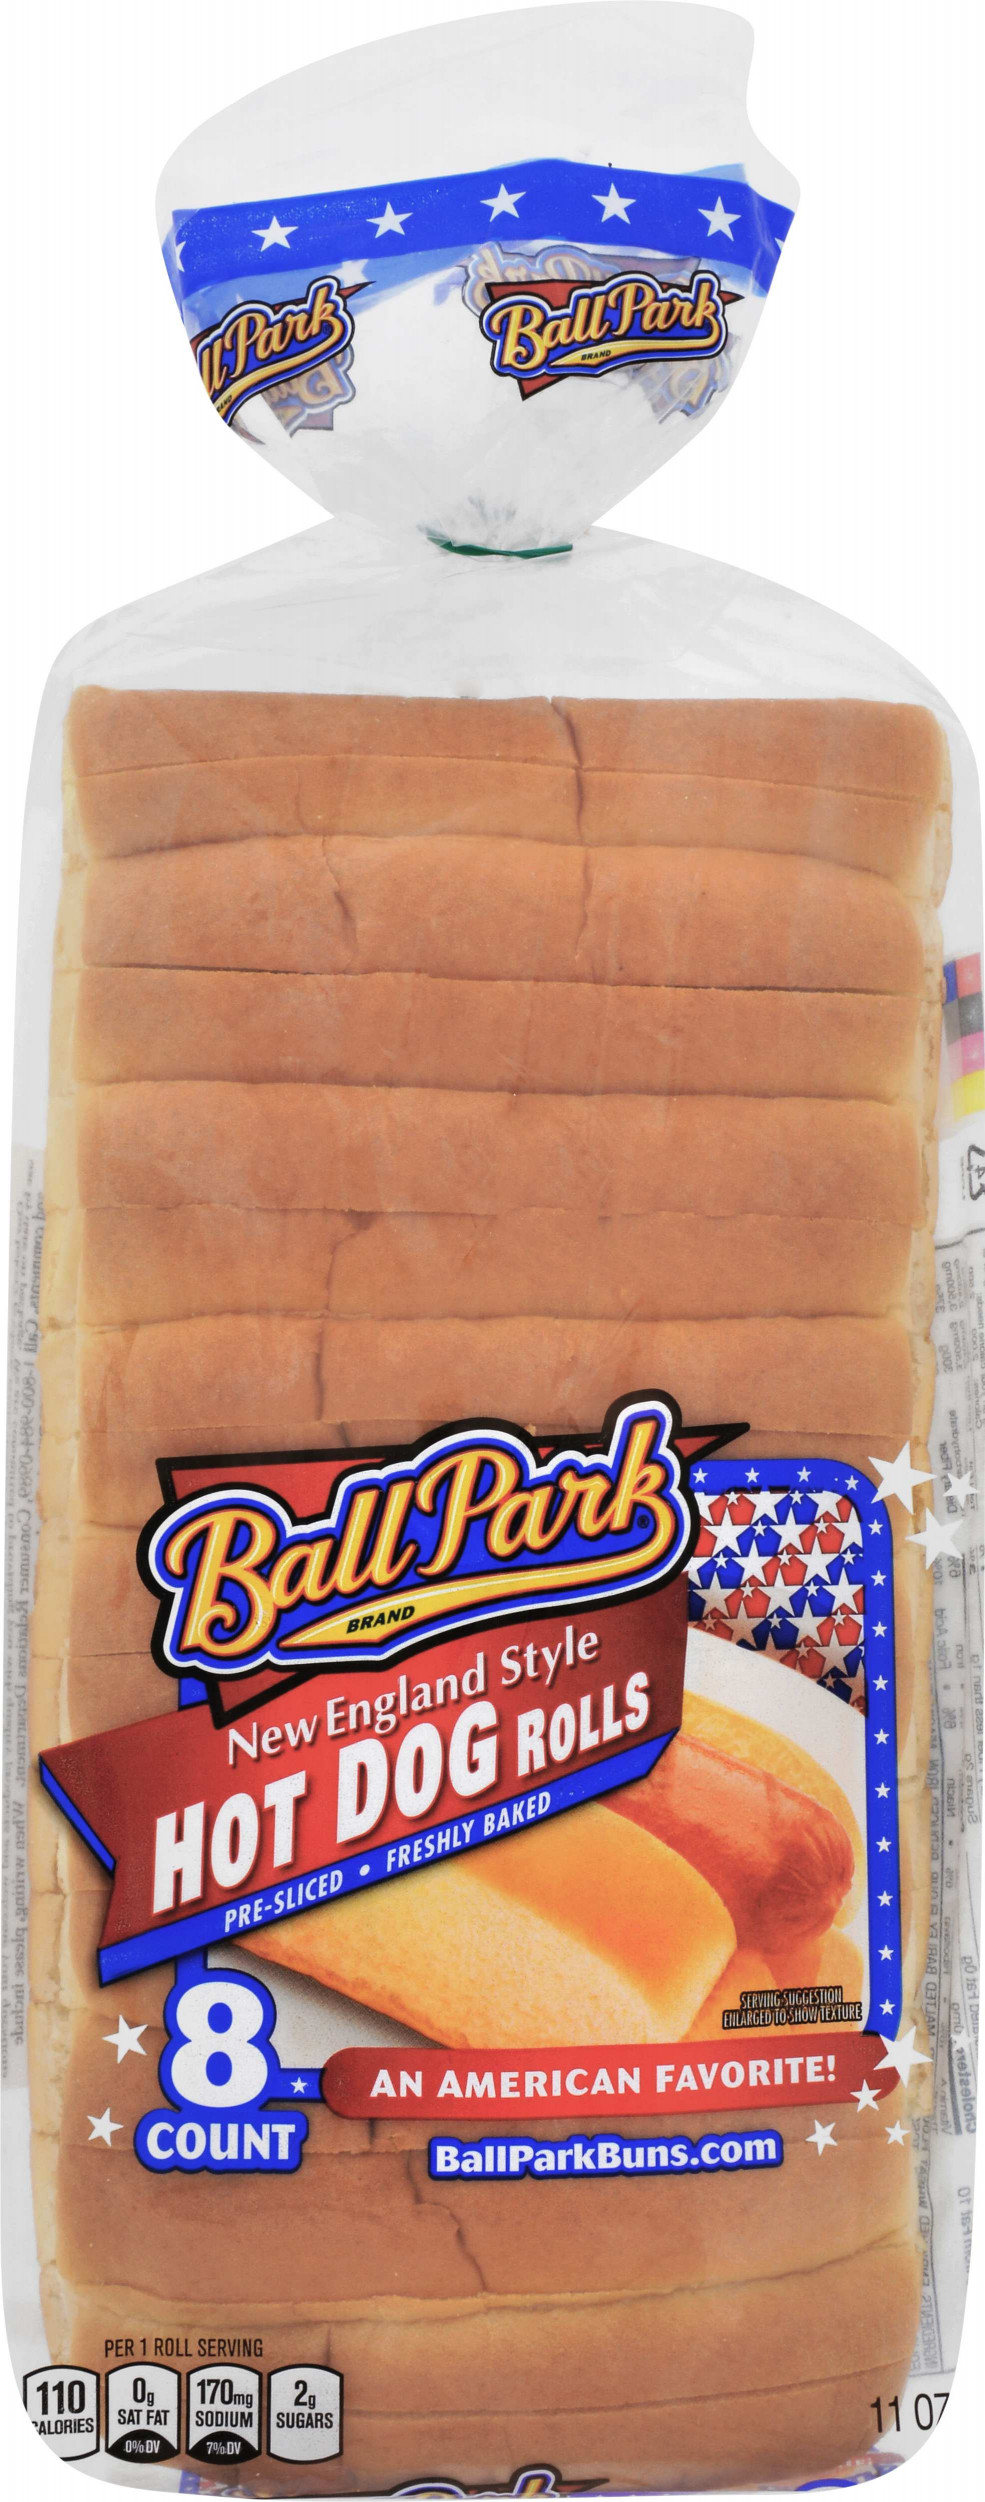 Ball Park New England Style Hot Dog Rolls 8 Count 11 Oz